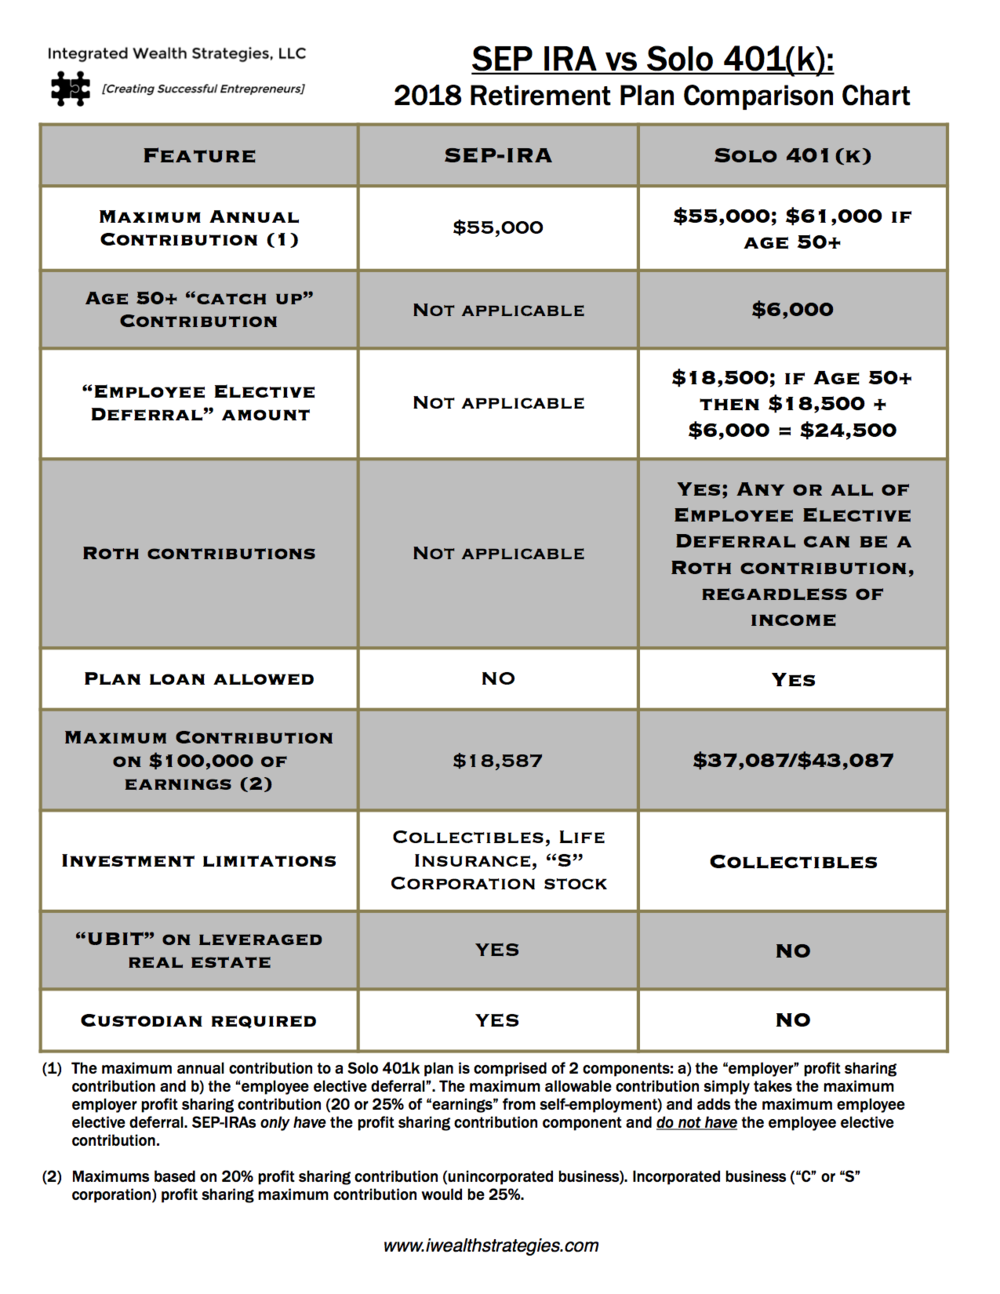 IWS - 2018  SEP vs Solo 401k Retirement plan comparison chart Squarespace v1.png